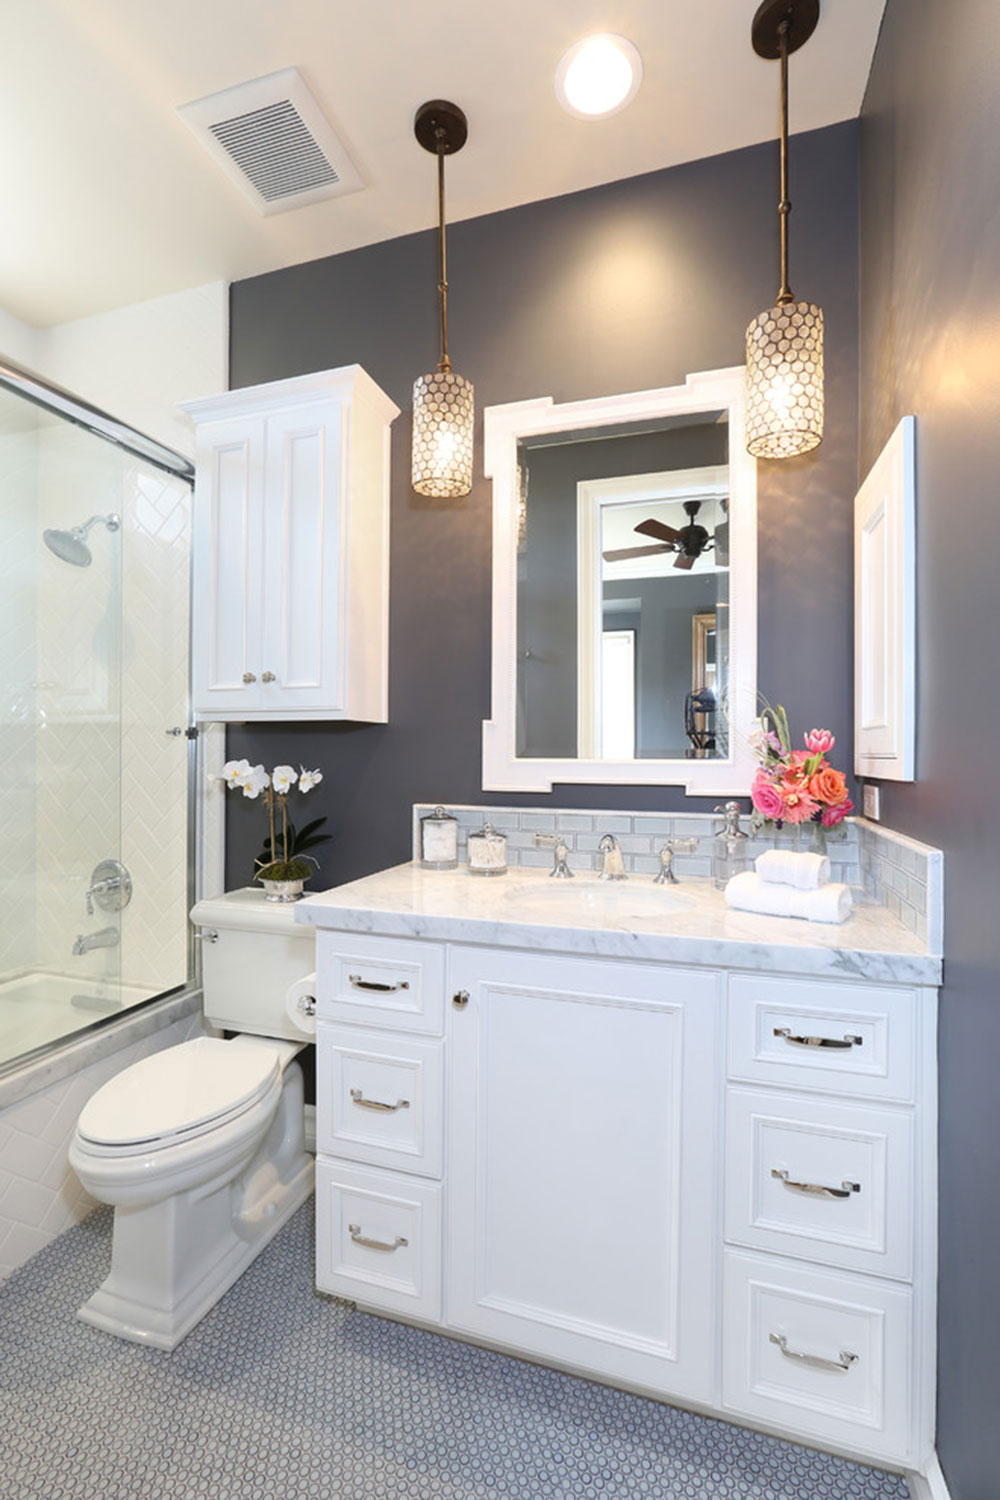 Luxury Small Bathrooms how to make a small bathroom look bigger - tips and ideas